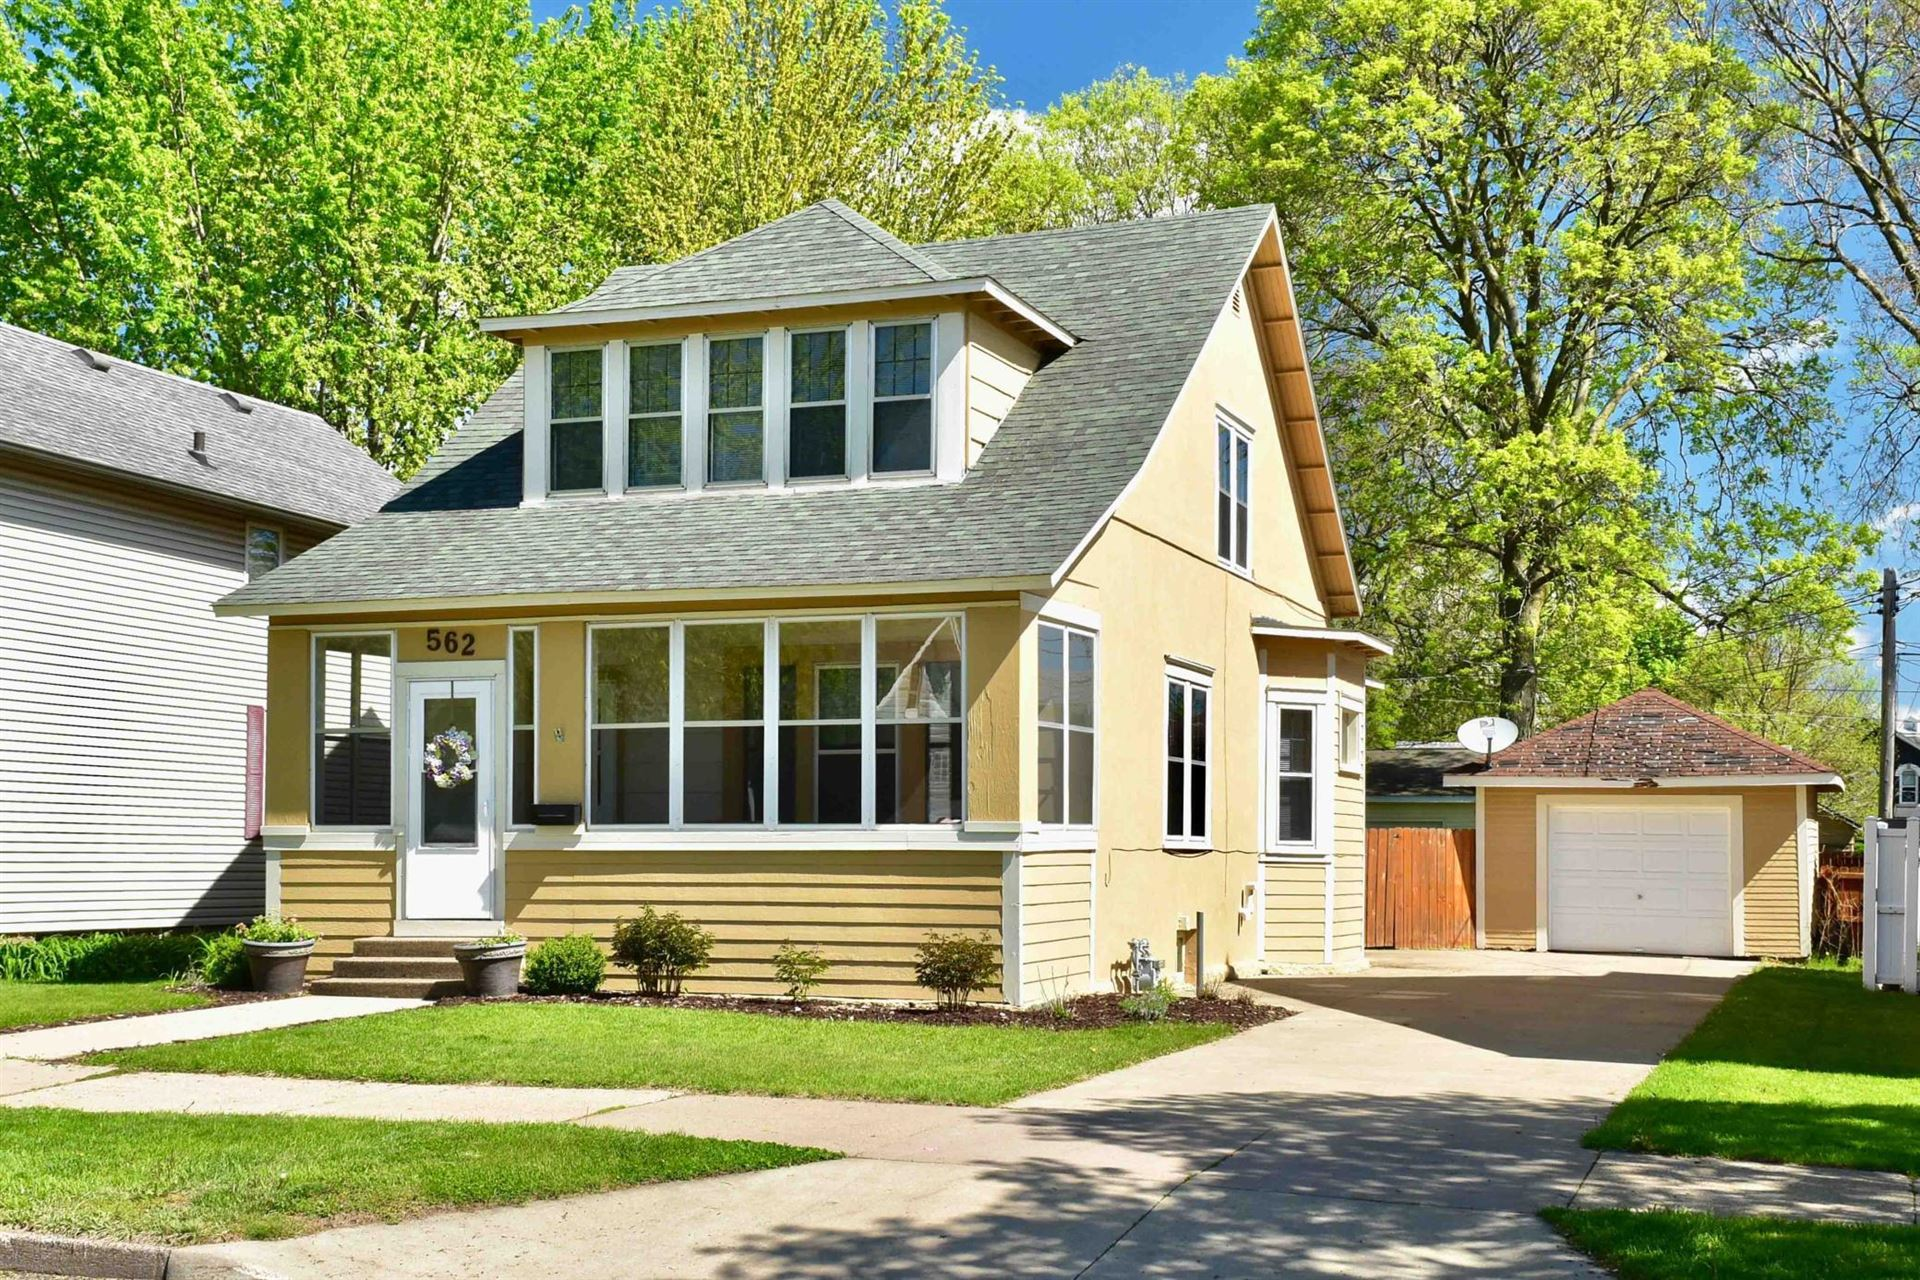 562 W King Street, Winona, MN 55987 - MLS#: 5752670